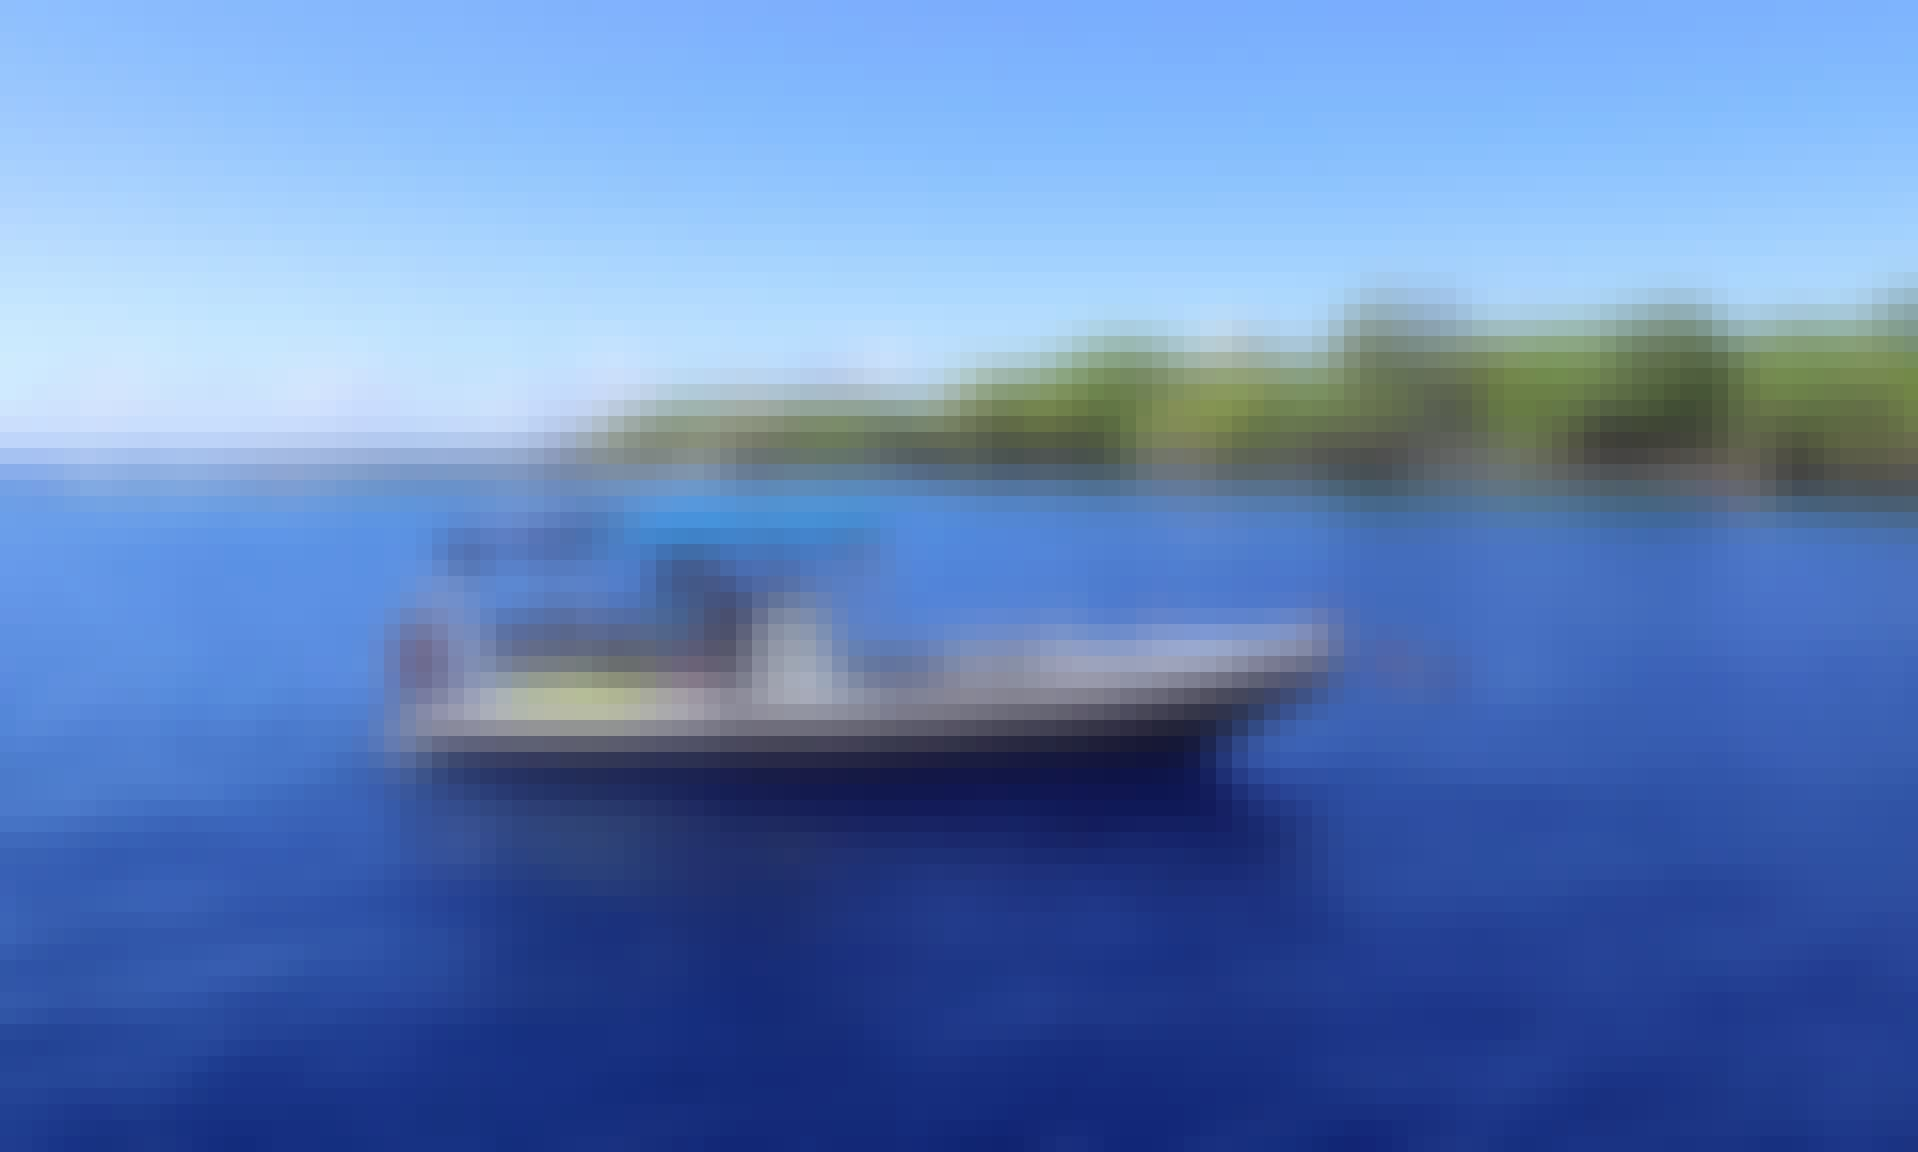 Deluxe Private Charter for 14 People in Kealakekua Bay and Captain Cook Monument